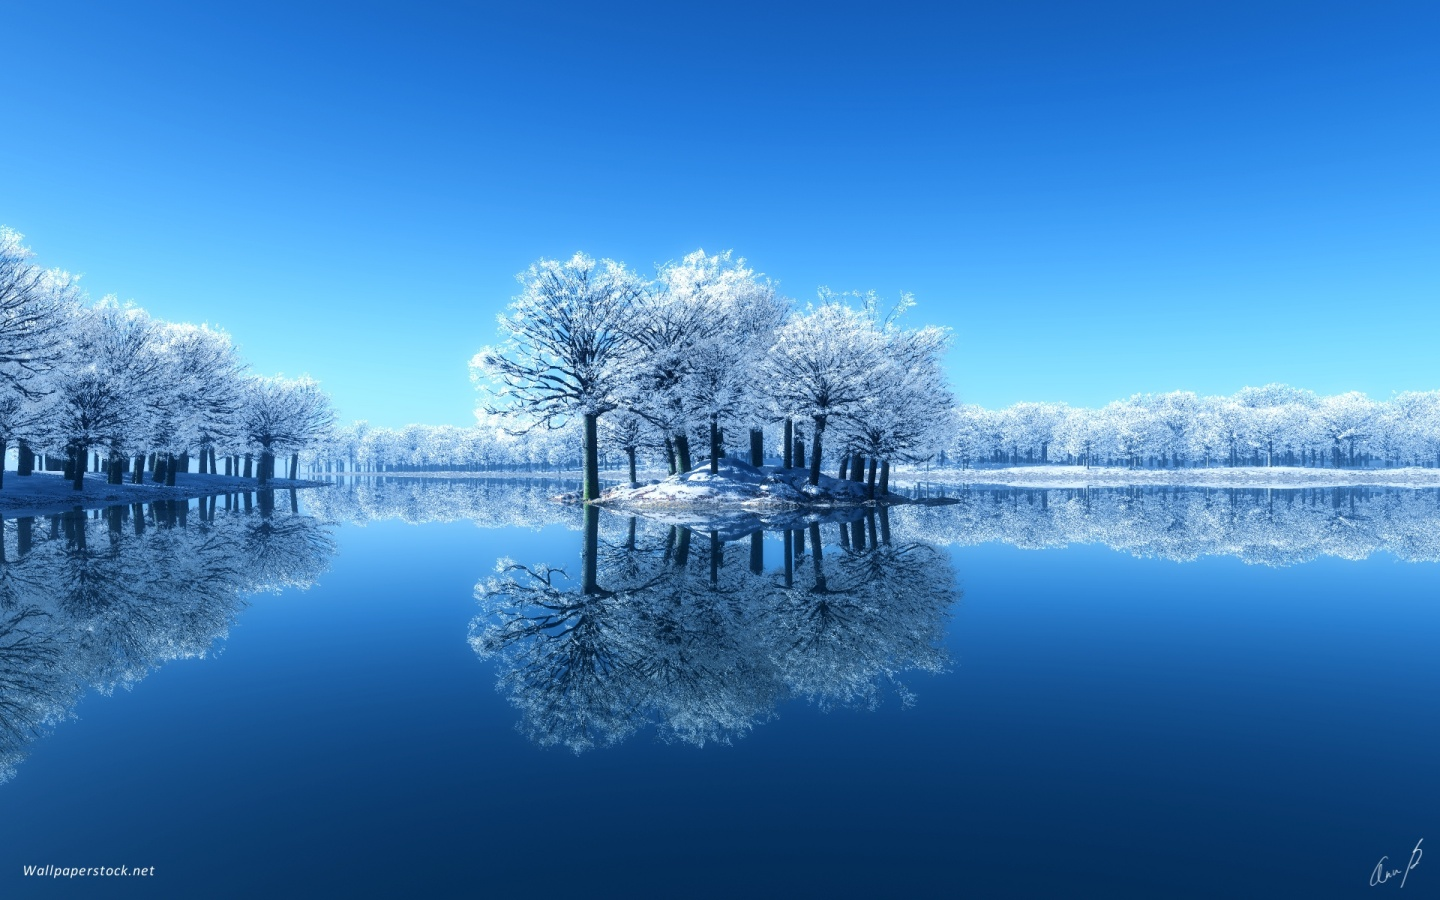 Beautiful Winter Scenery Wallpaper wallpapers